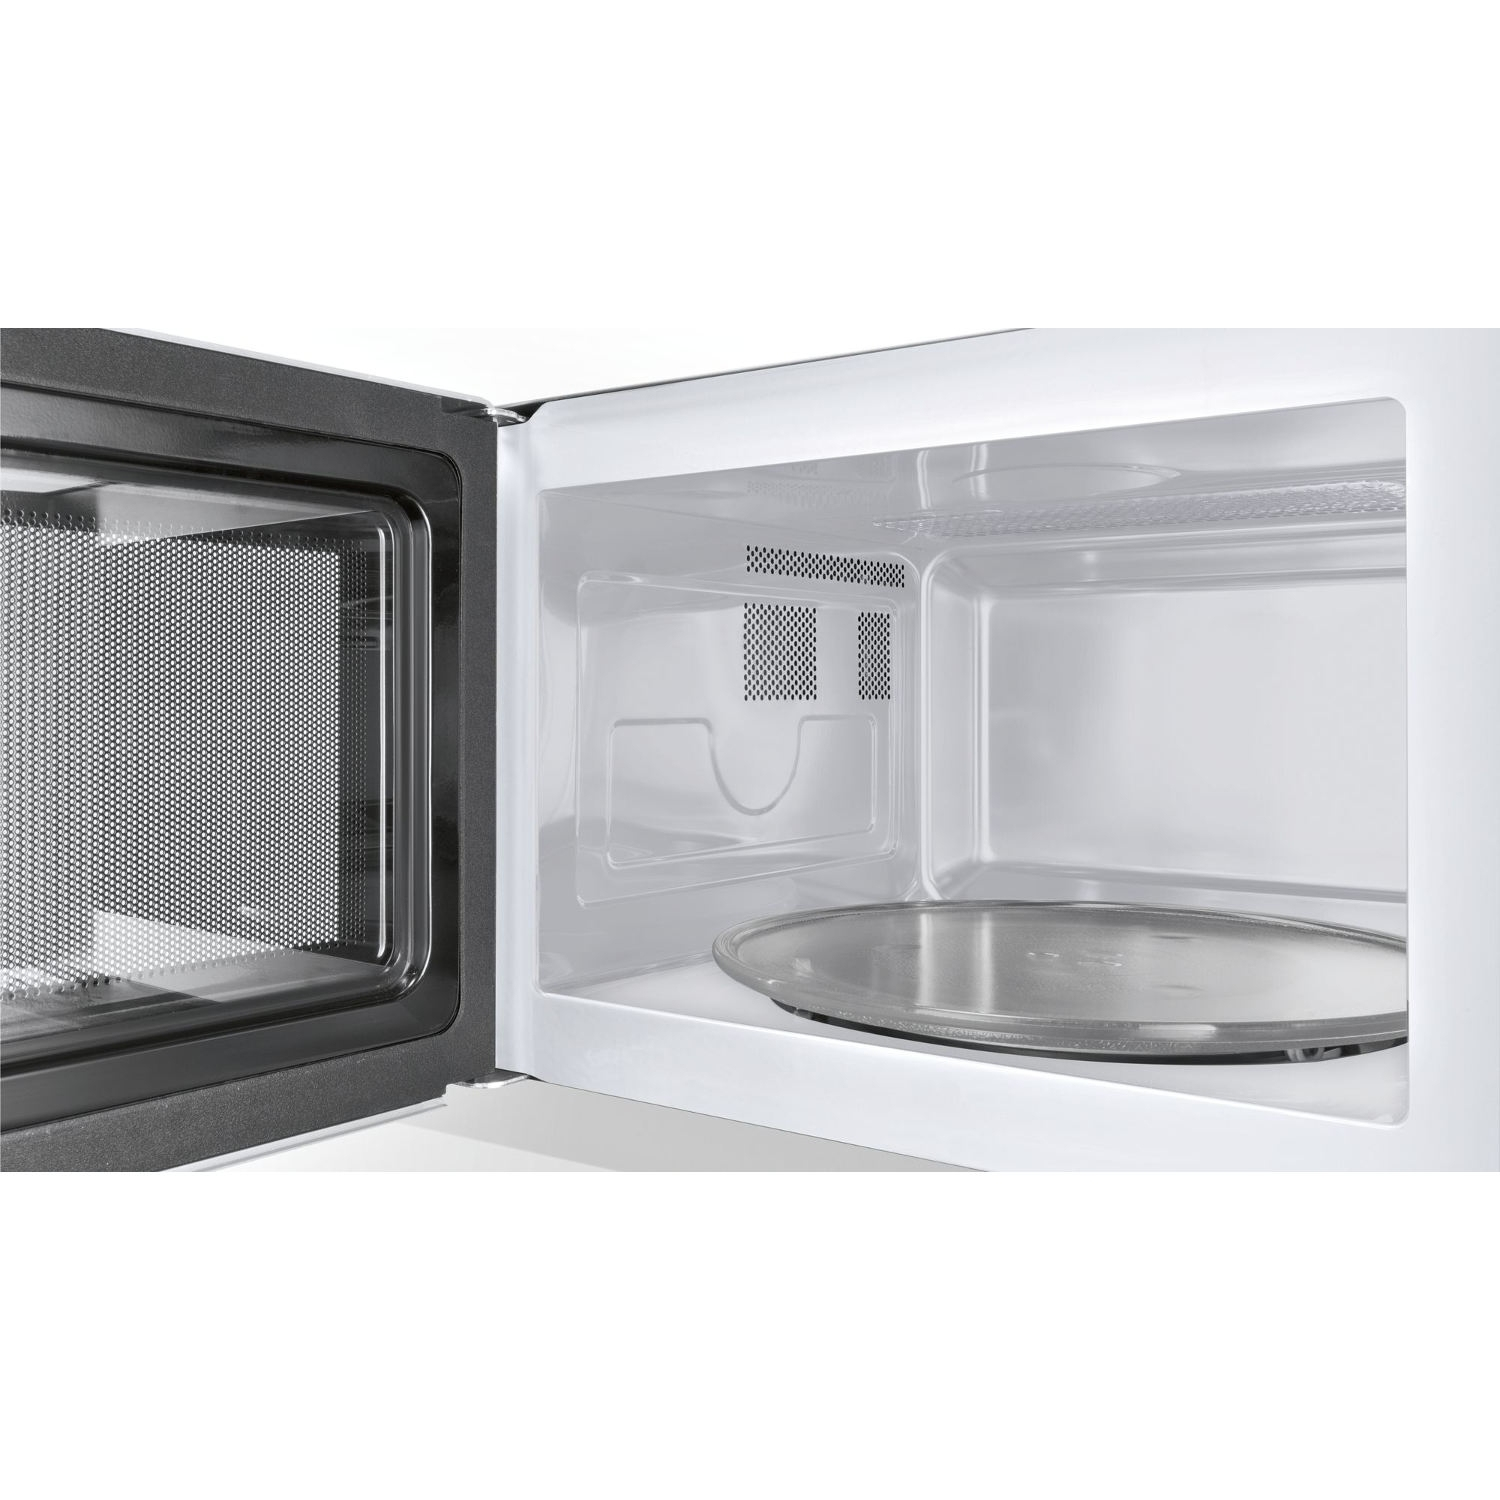 Bosch 25 Litre Microwave - Brushed Steel - 1